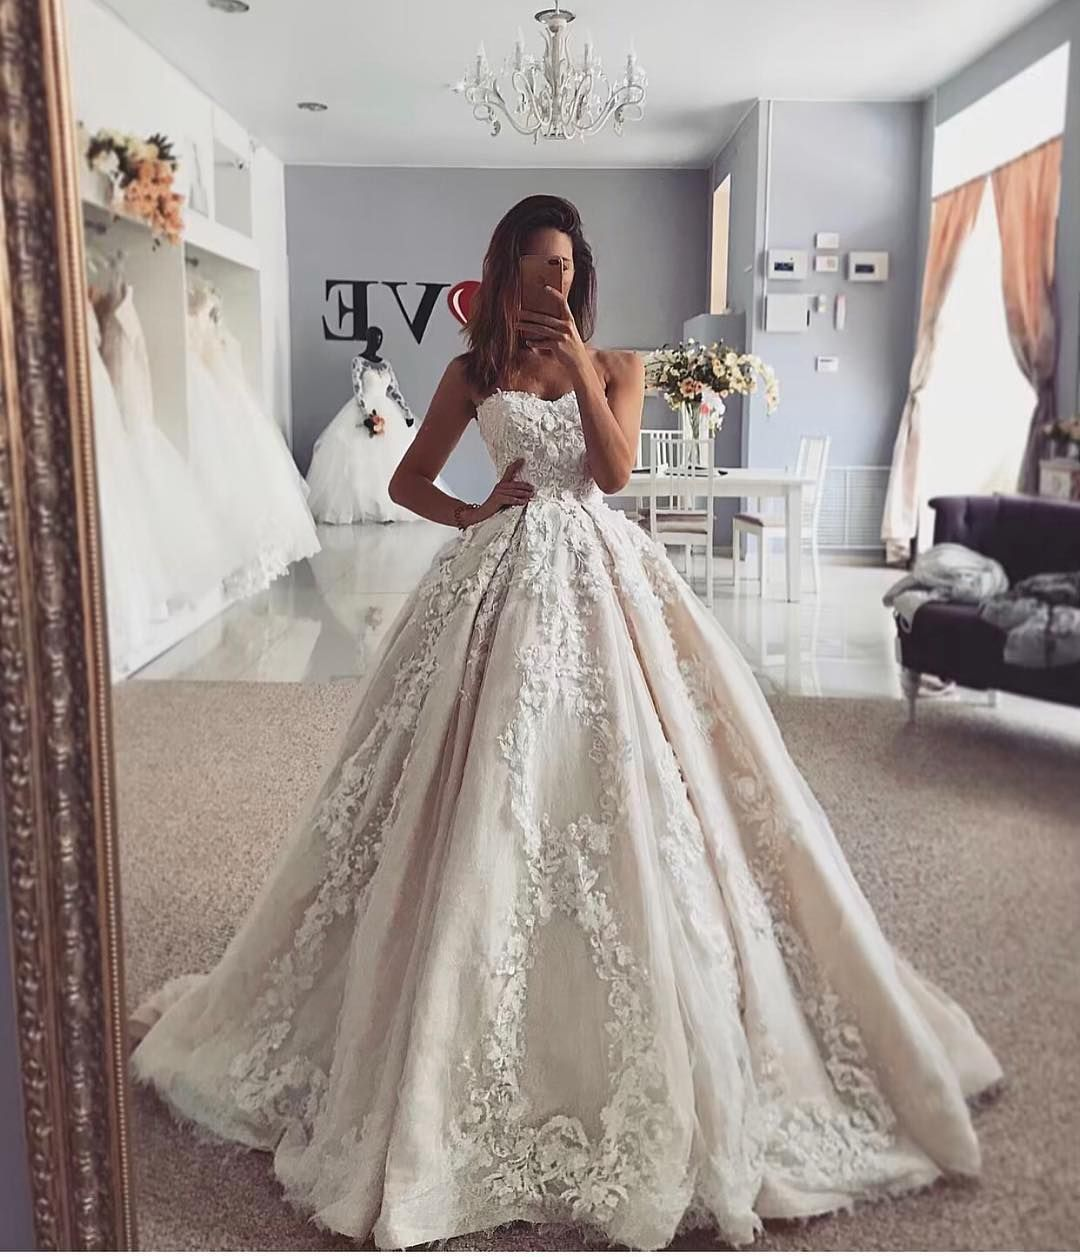 LuxeBrideGuide (@luxebrideguide) • Instagram photos and videos There's nothing like a big, beautiful ball gown  Gown @salonlove1            luxebrideguide ballgown weddinggoals weddingdressgo is part of Wedding dresses -